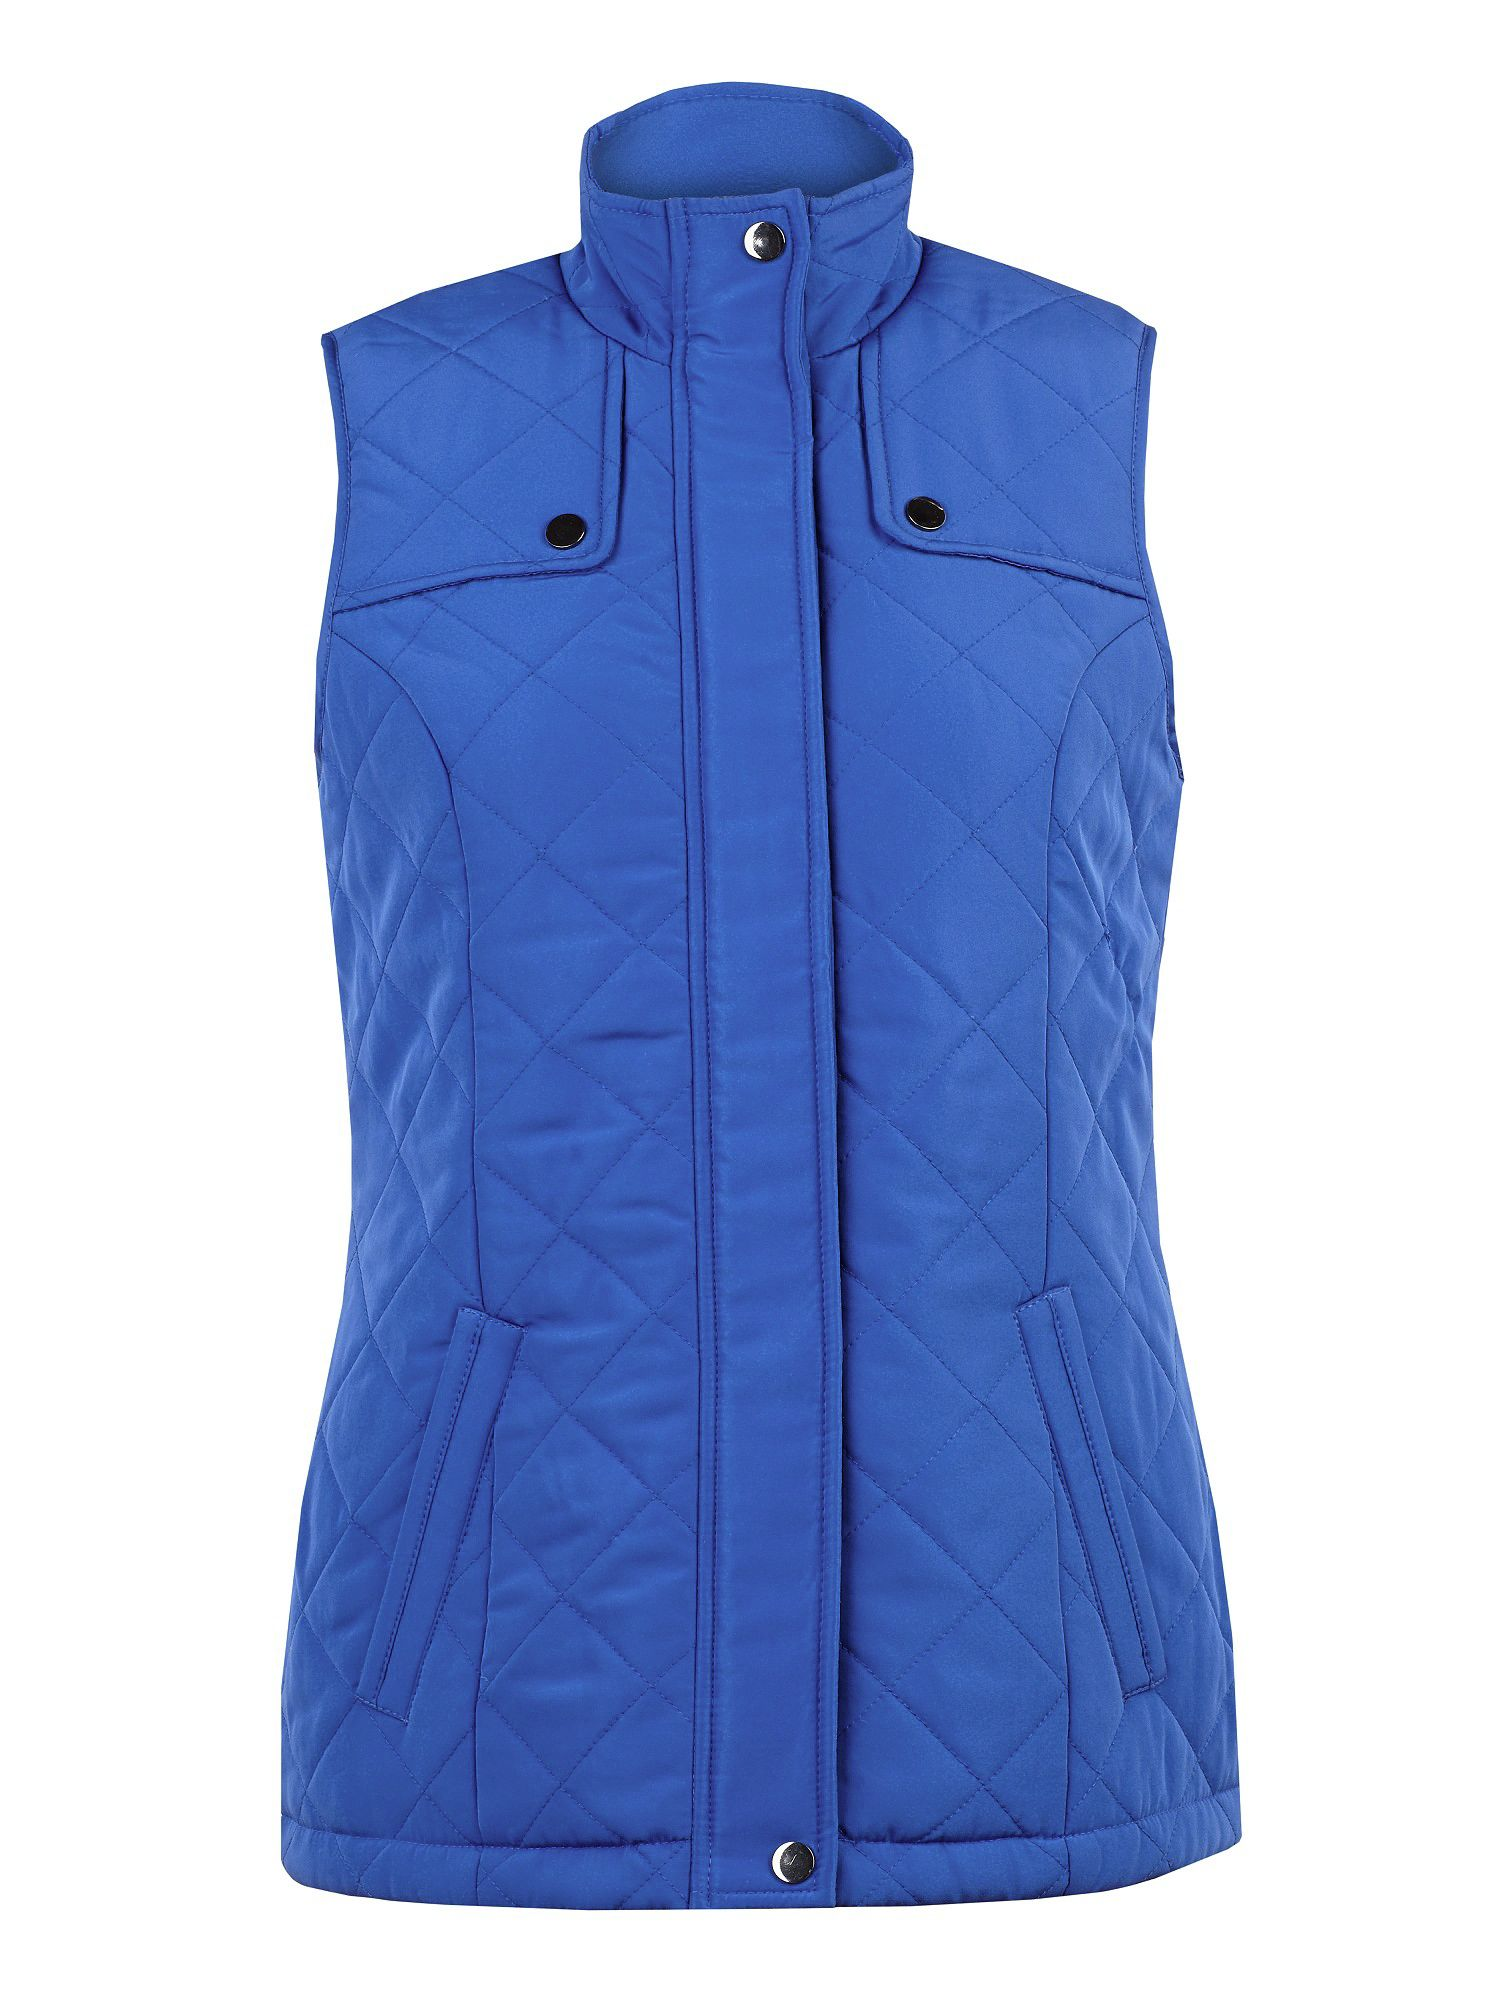 Picasso diamond quilted gilet